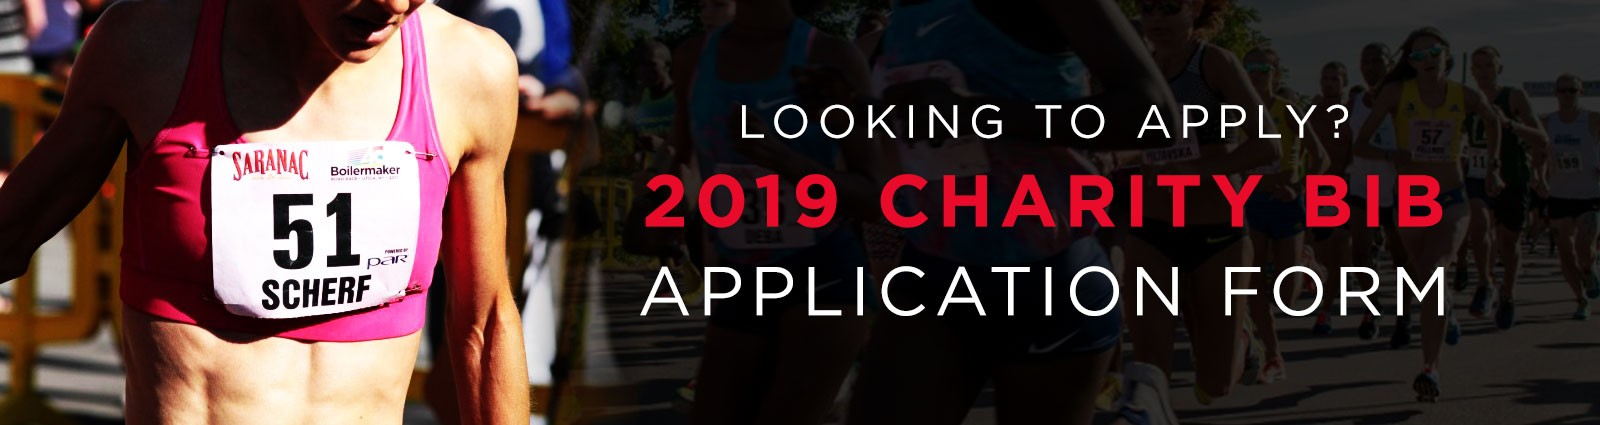 Click here to apply to be a 2019 Boilermaker Charity Bib partner!